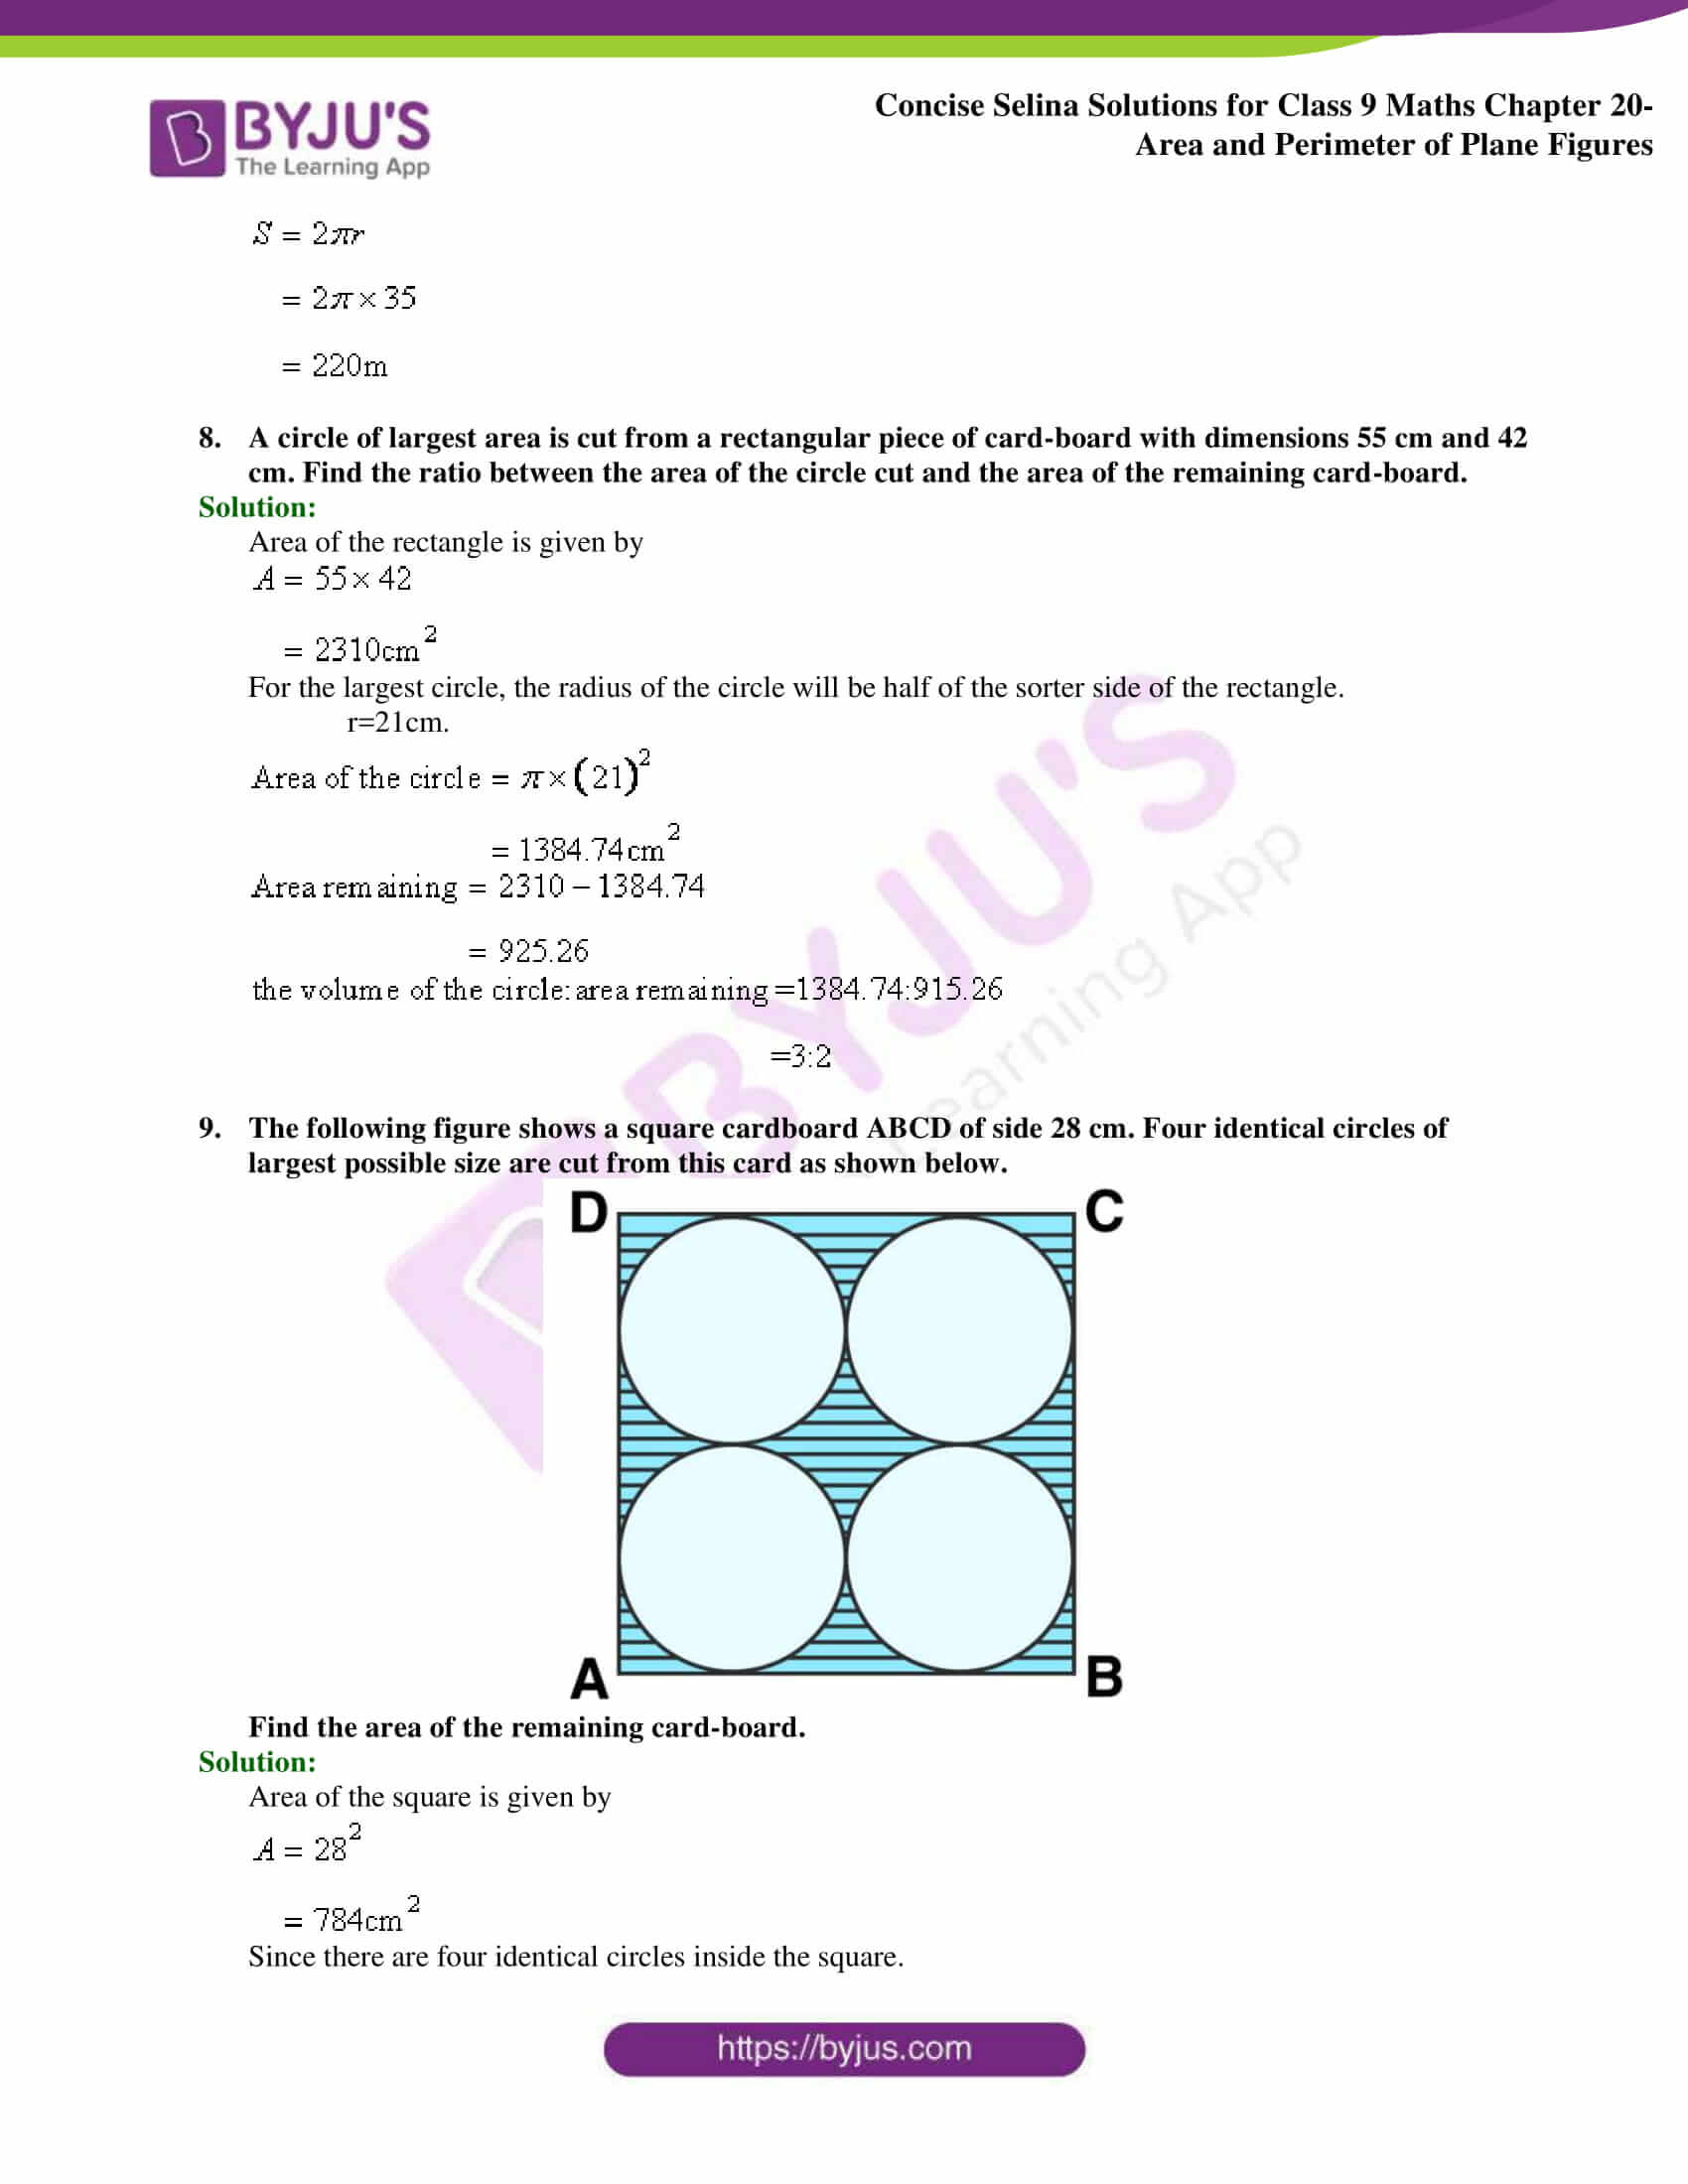 Concise Selina Solutions Class 9 Maths Chapter 20 Area and Perimeter of Plane part 36